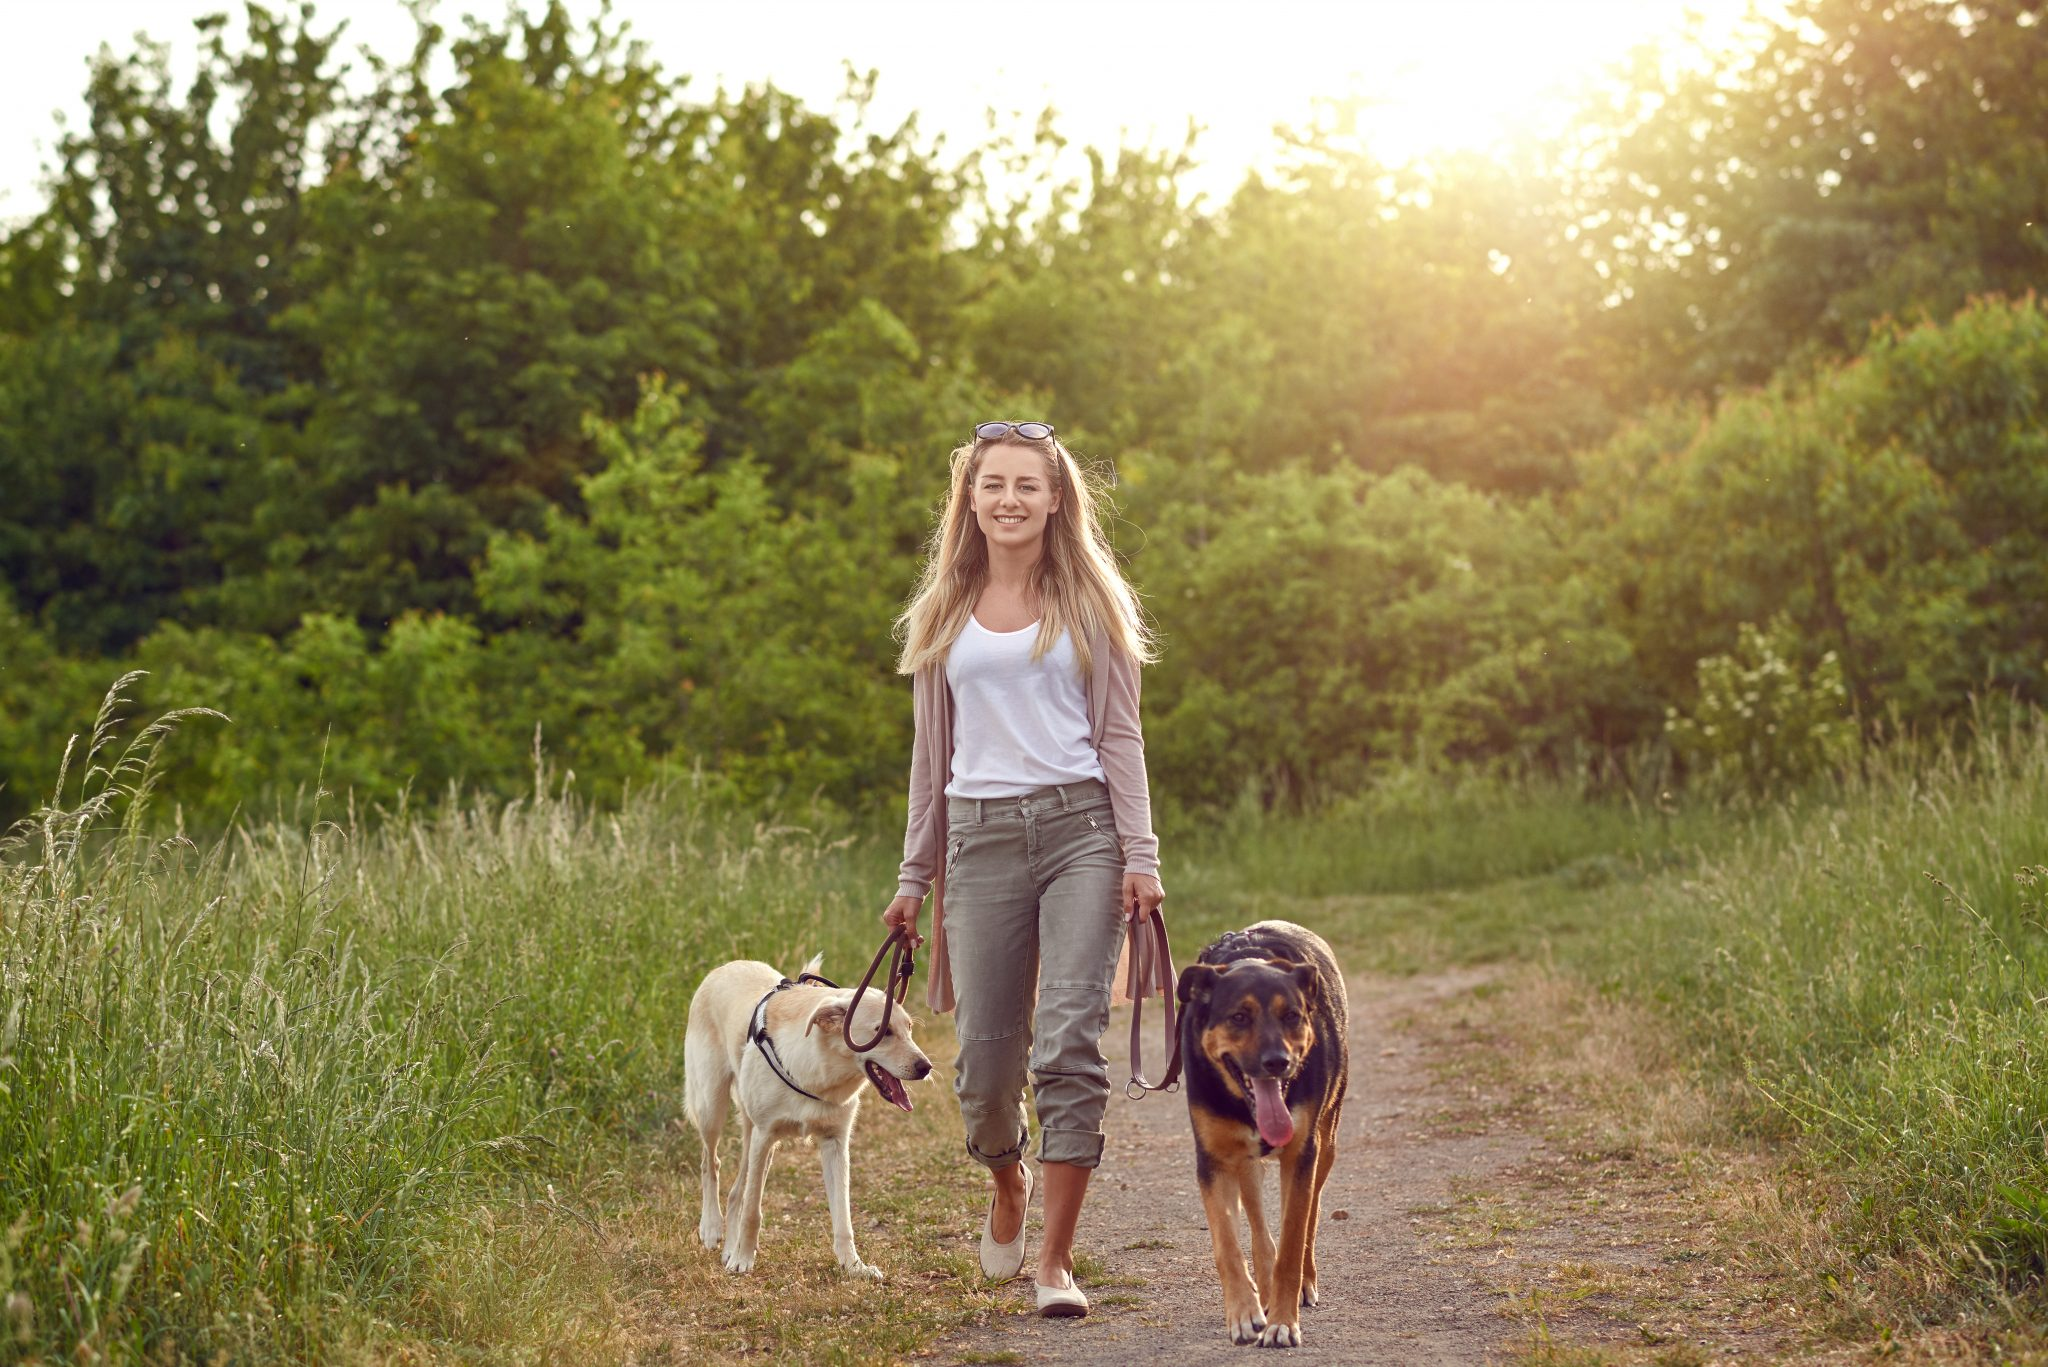 Pet-Friendly Hotels in Whitecourt Alberta | Kanata Whitecourt 2